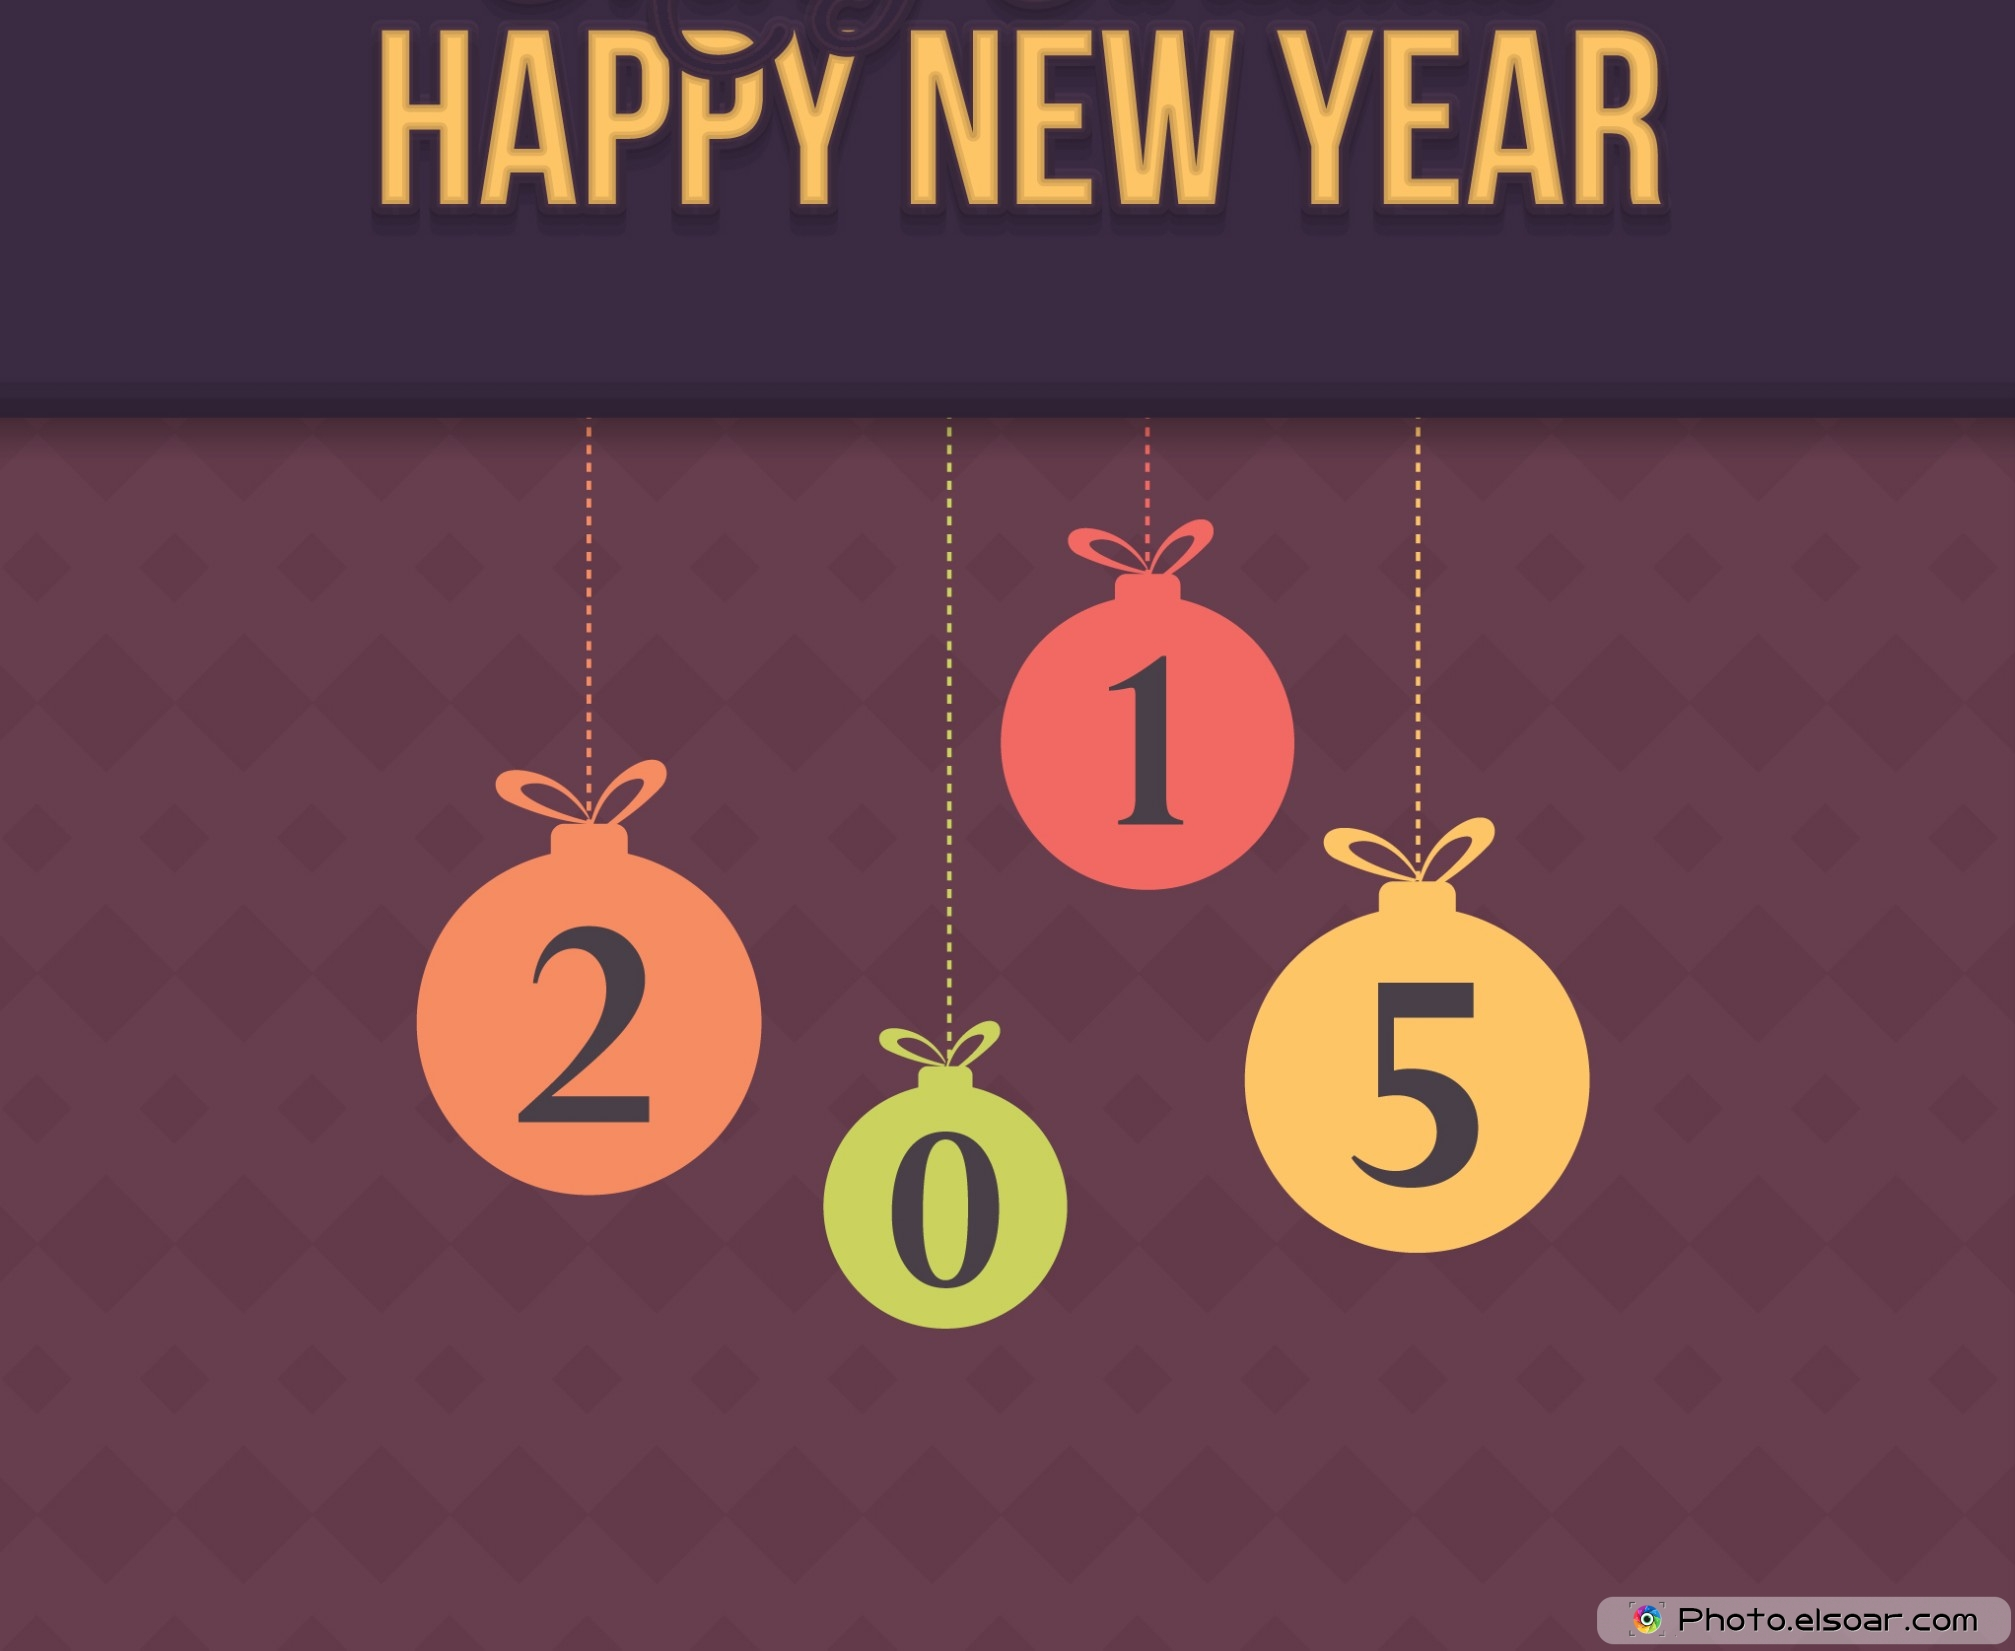 Download Top Images Written On Them A Happy New Year 2015 For Free